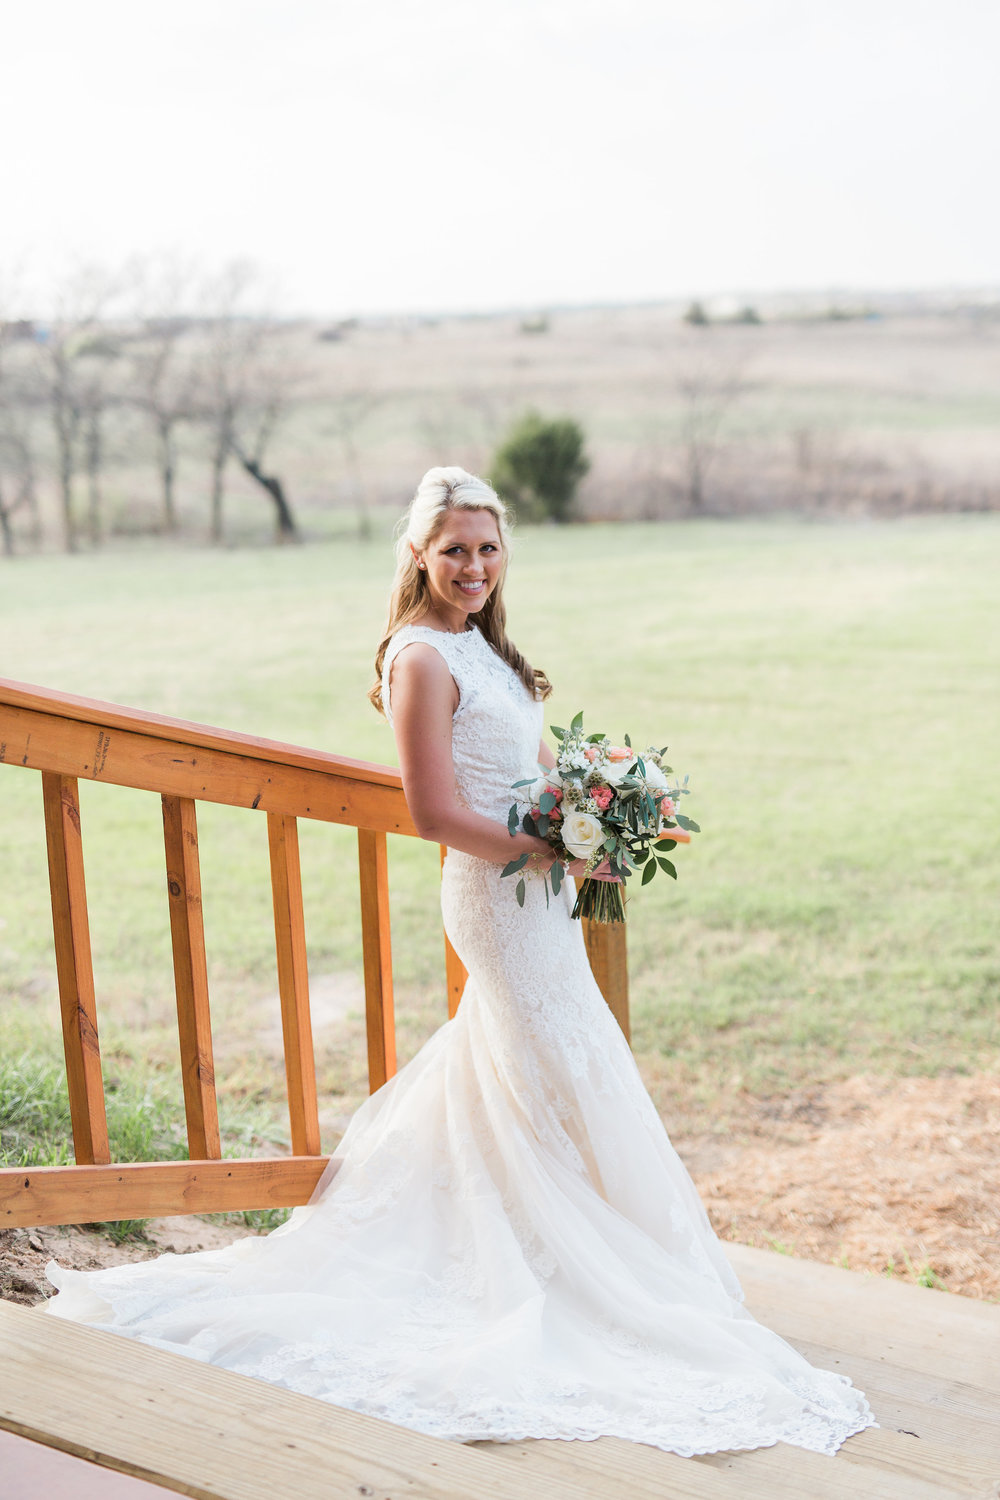 Jessica - The Big White Barn in Decatur